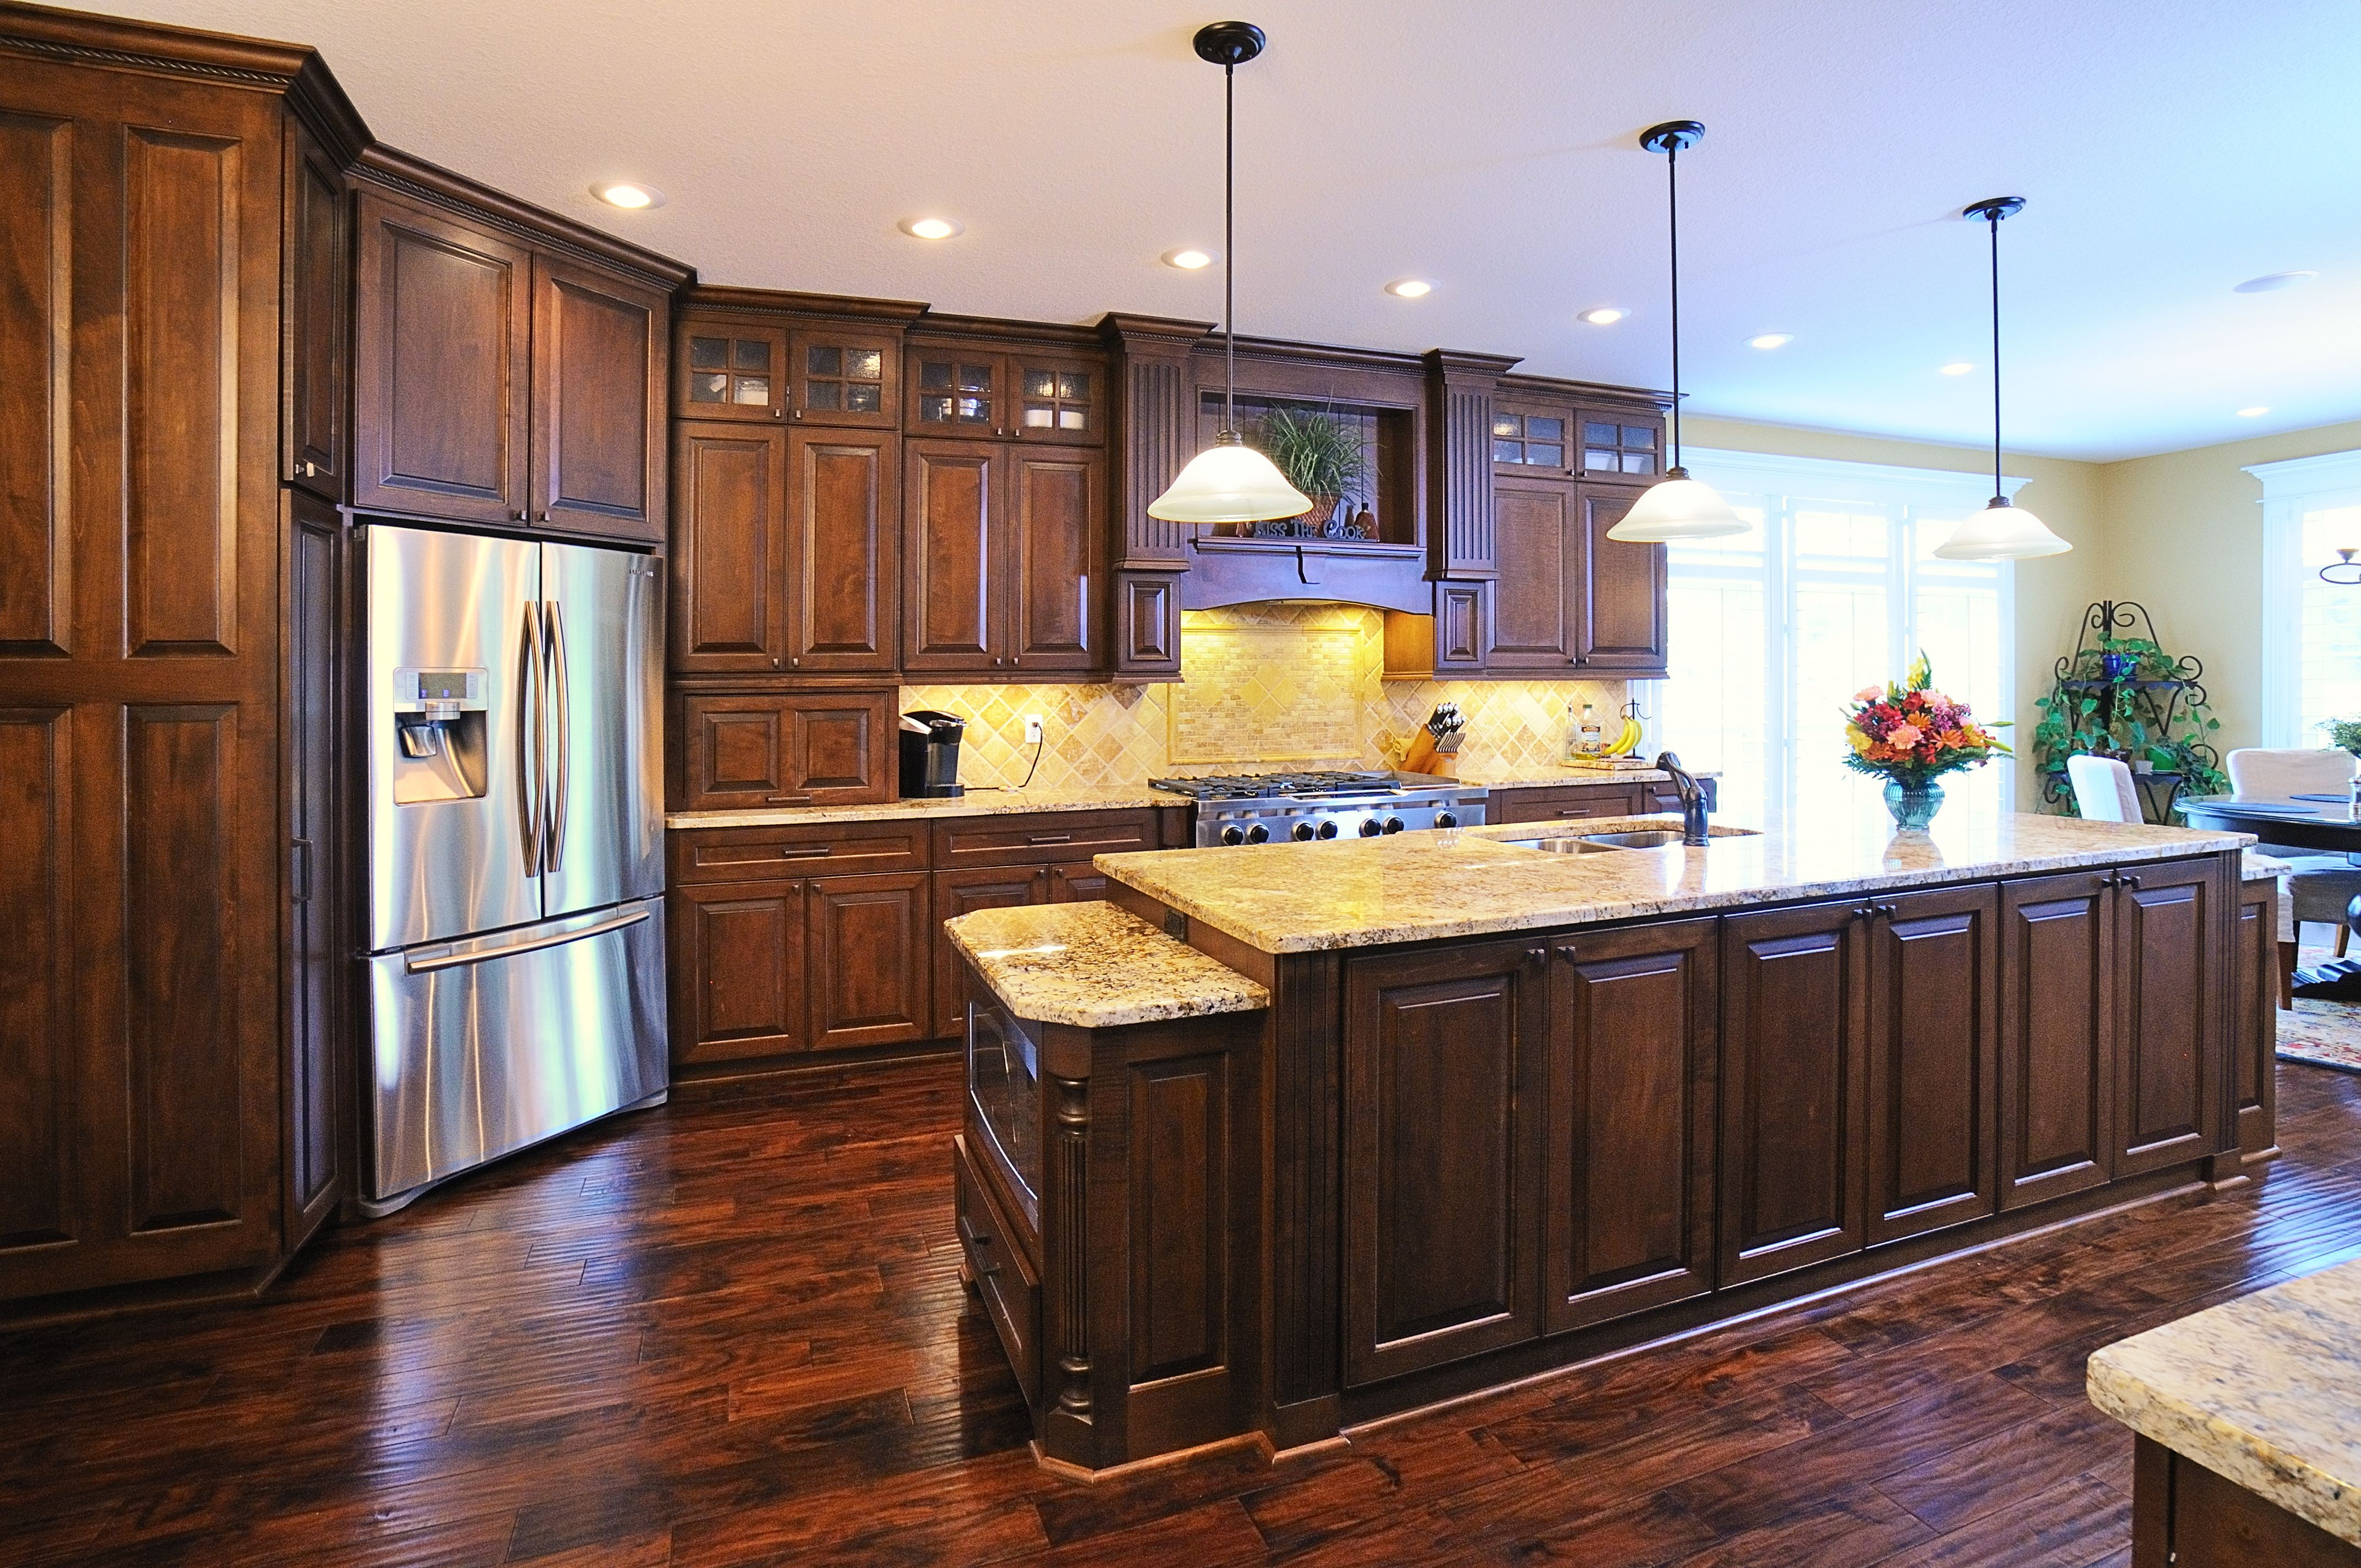 High End Kitchen Cabinetry By Schaad & Sons, Ohio